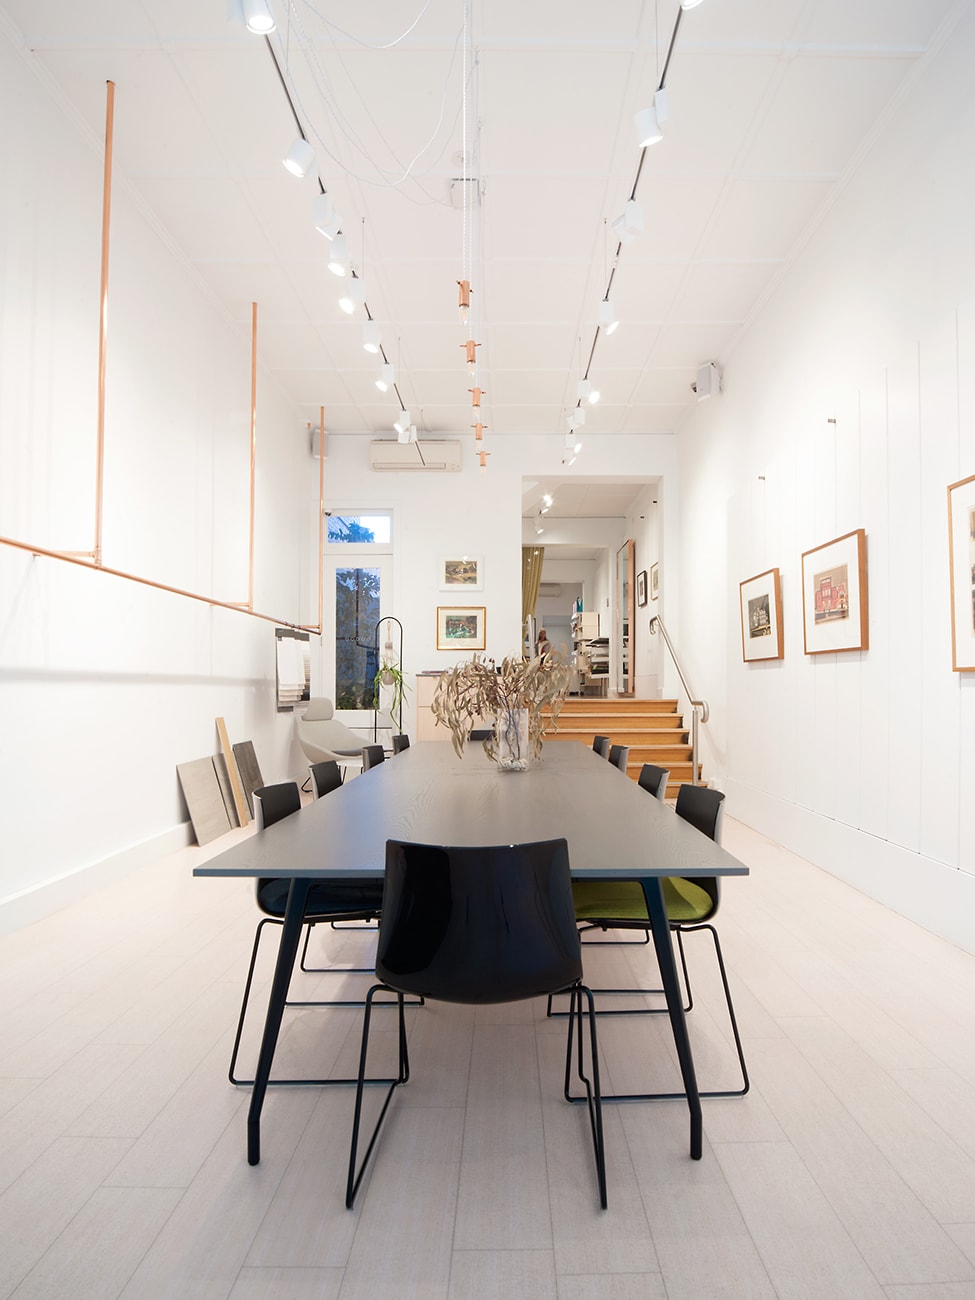 Long meeting table in a white walled room